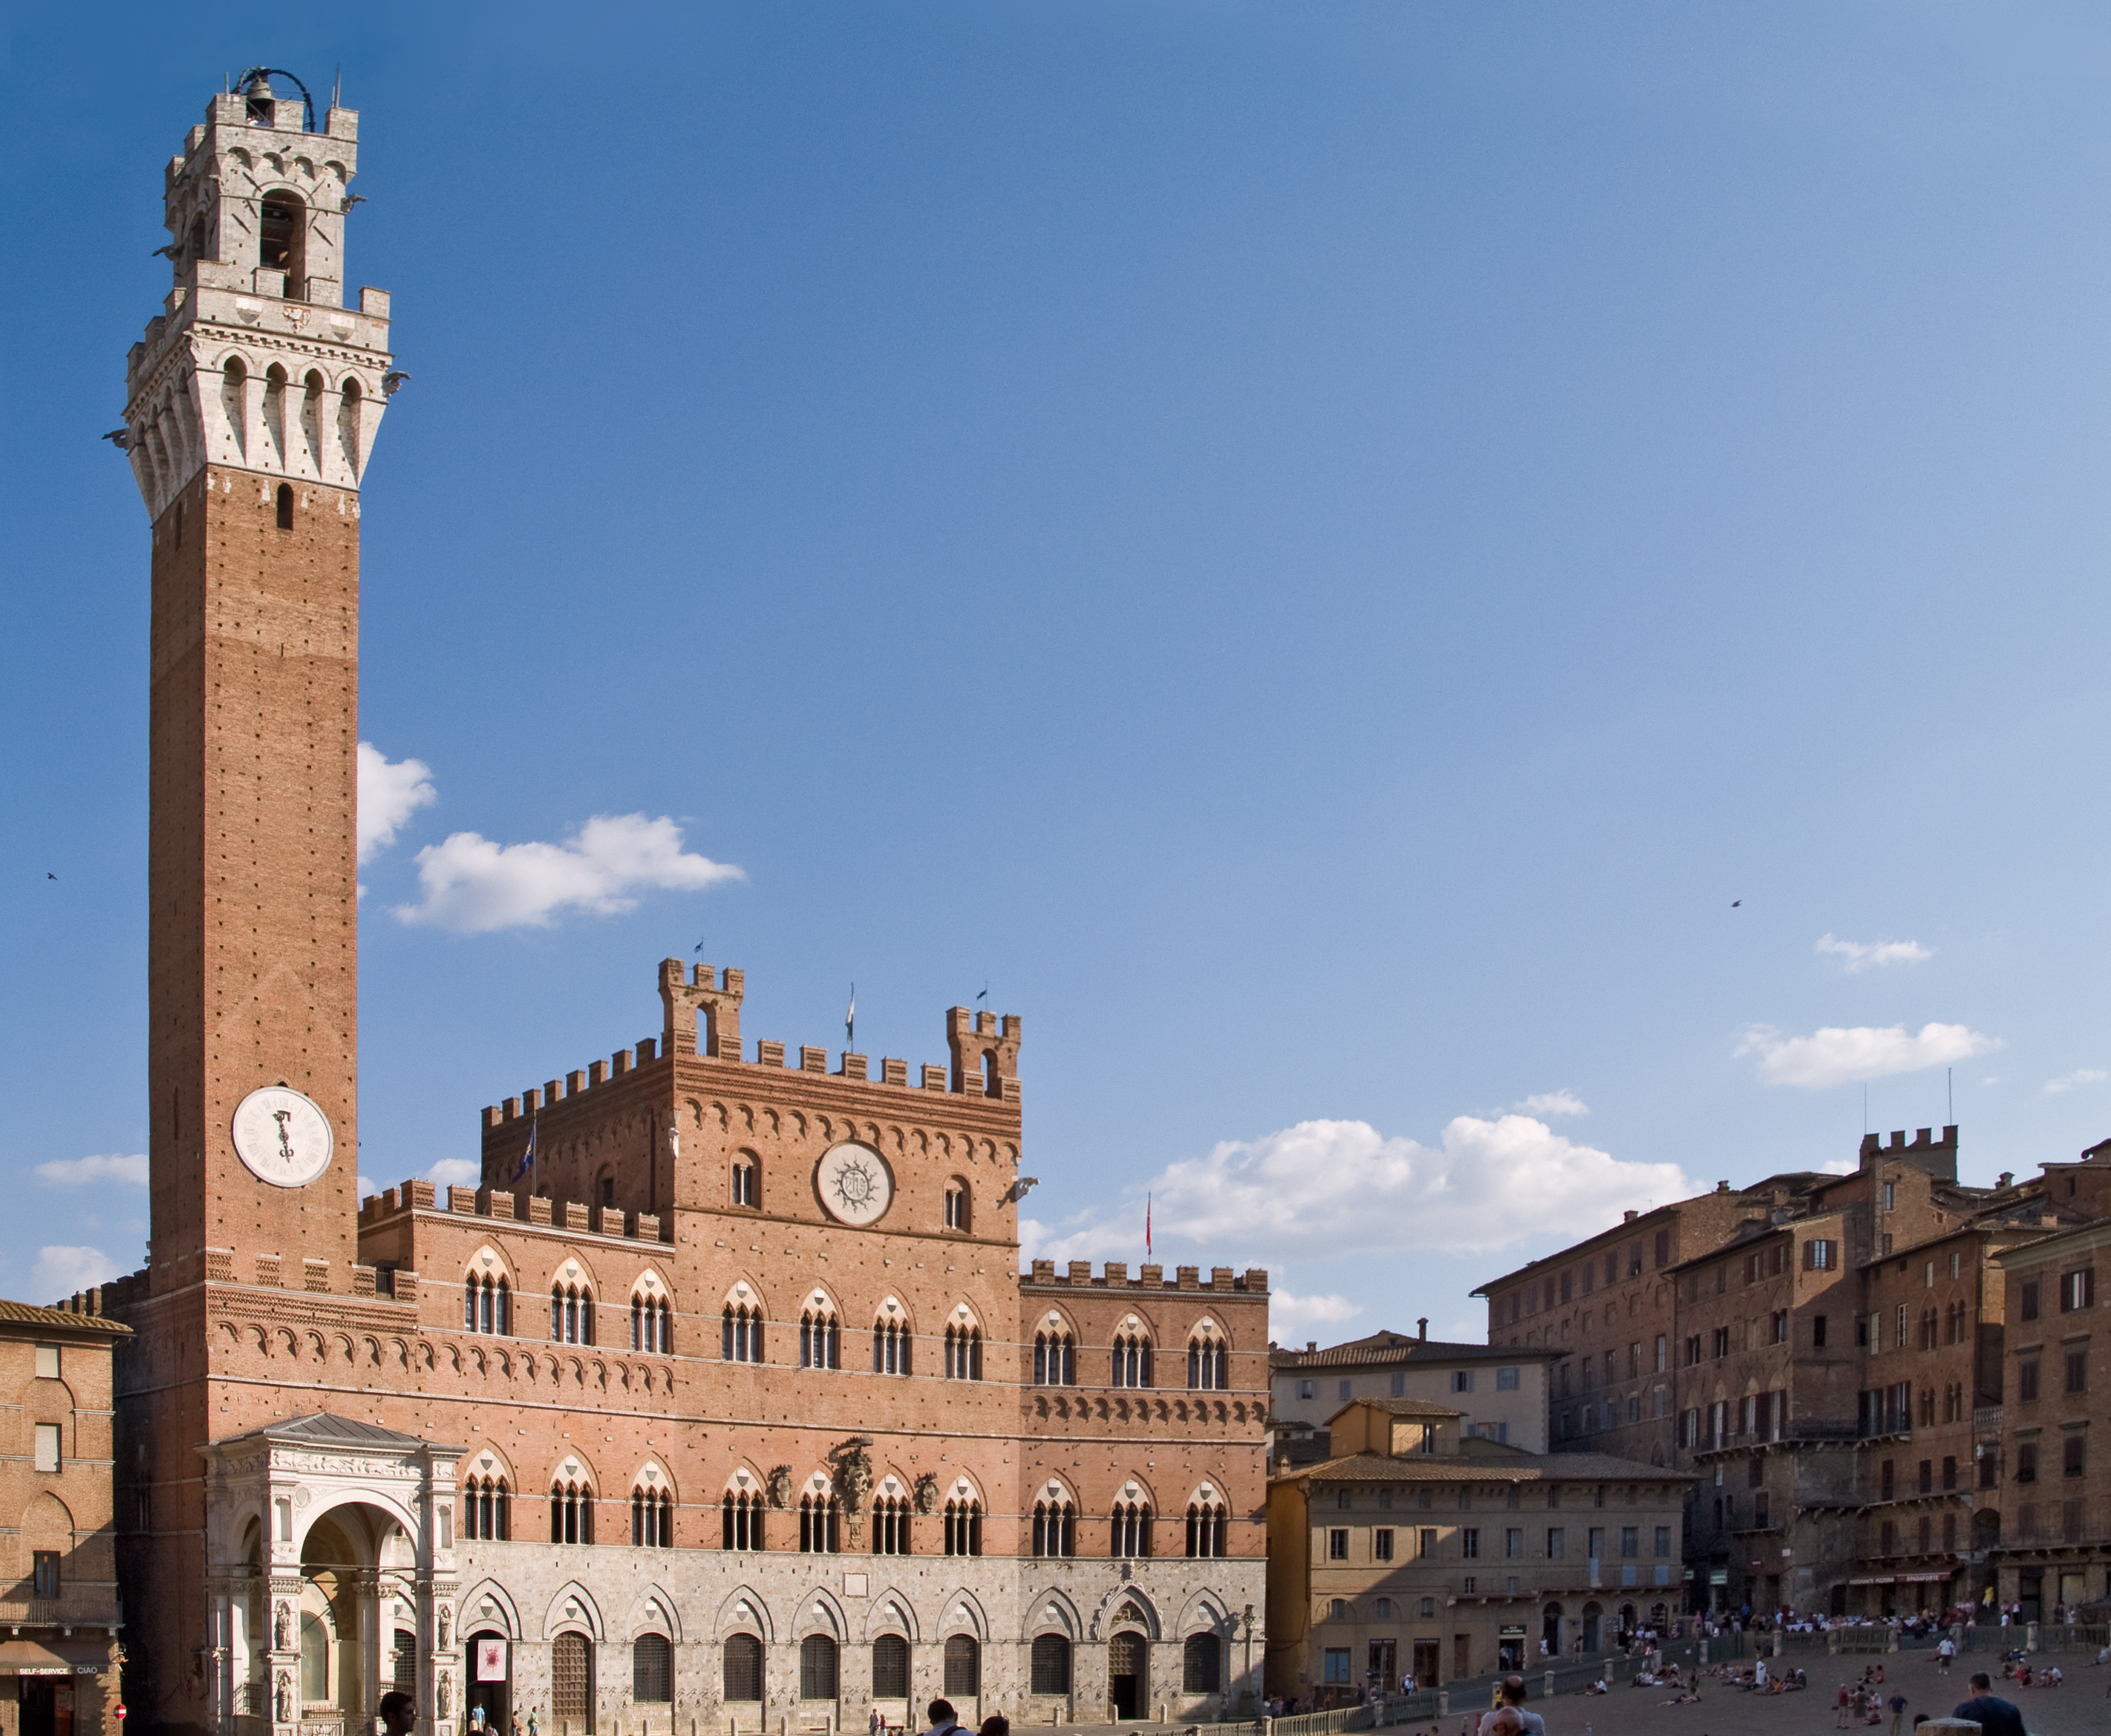 http://upload.wikimedia.org/wikipedia/commons/d/d2/03_Palazzo_Pubblico_Torre_del_Mangia_Siena.jpg